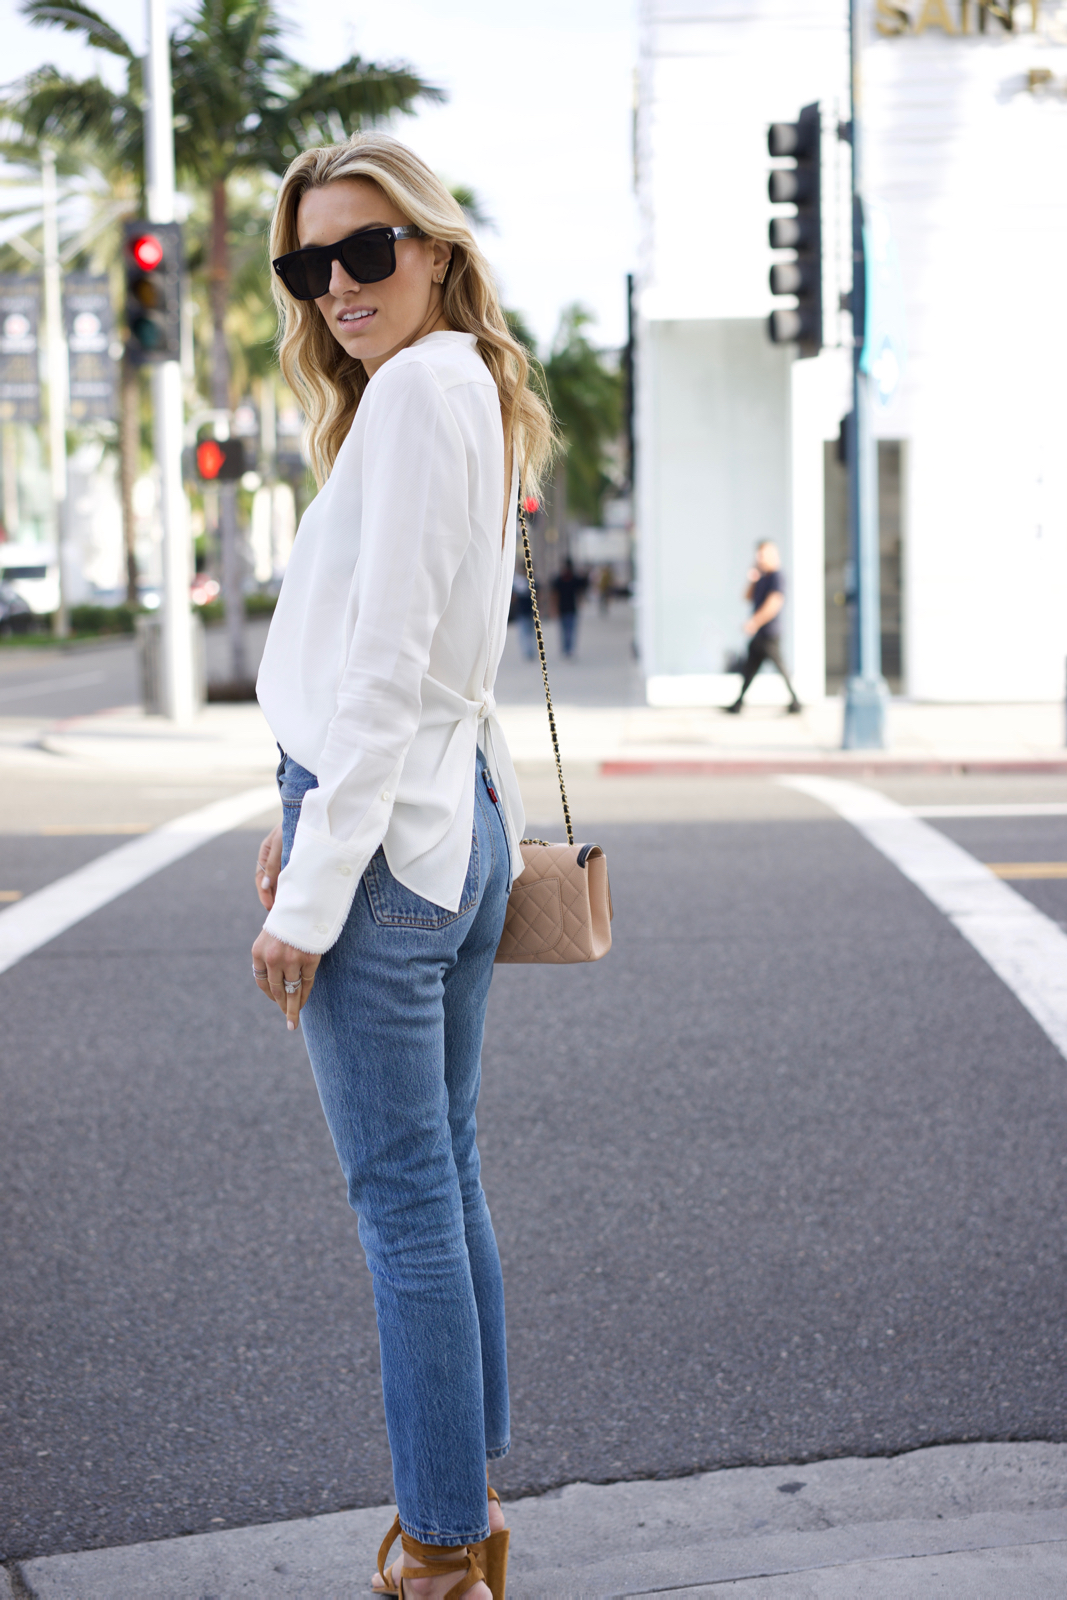 Helmut Lang Open Back Top, Levi's Jean, Chanel shoes and bag, Givenchy, Gianvito Rossi Shoes, Los Angeles, California